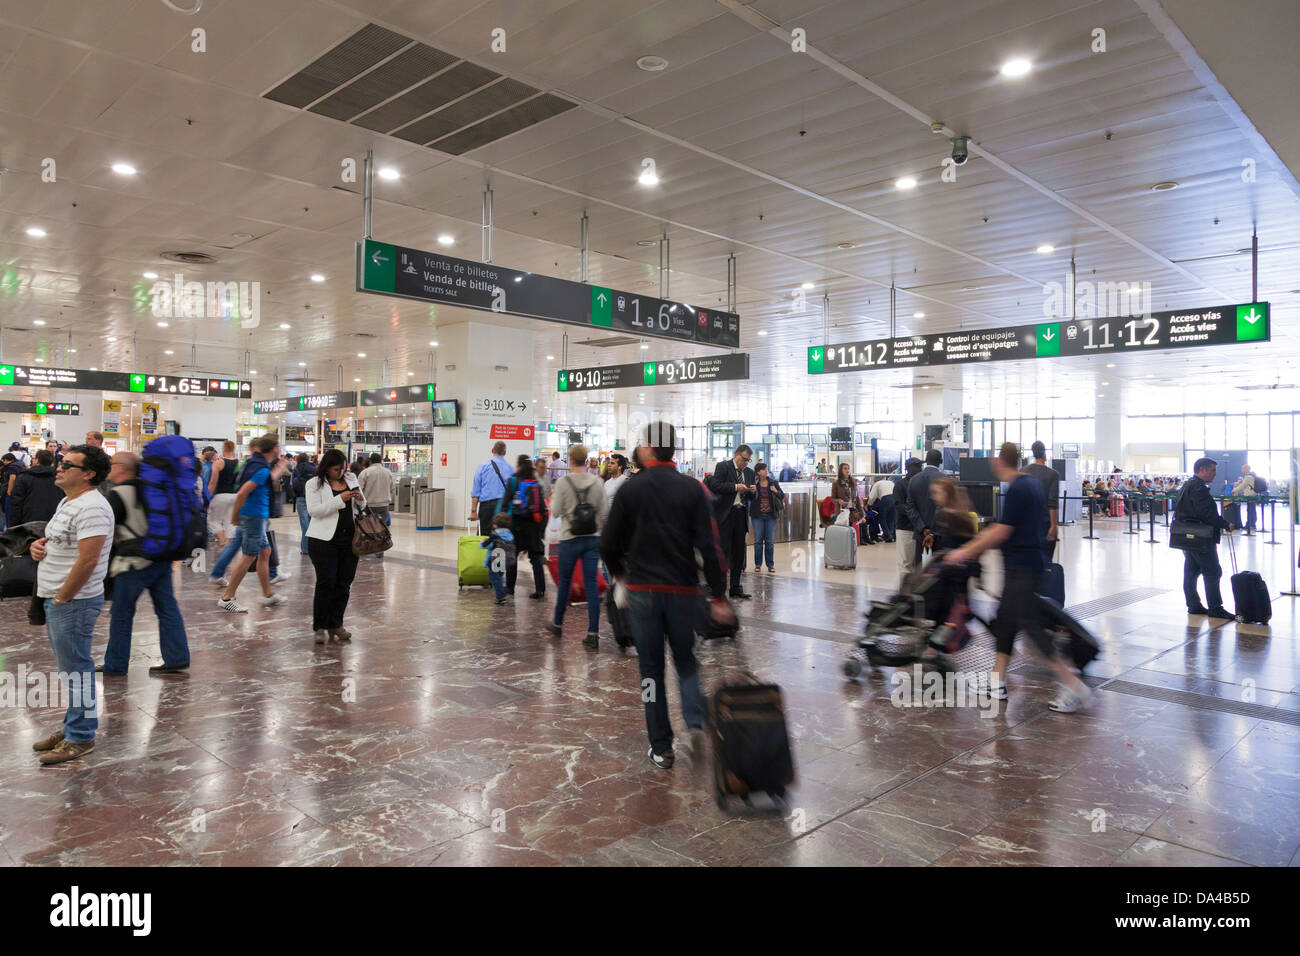 Passengers in the ticket hall at Barcelona Sants Railway Station. - Stock Image